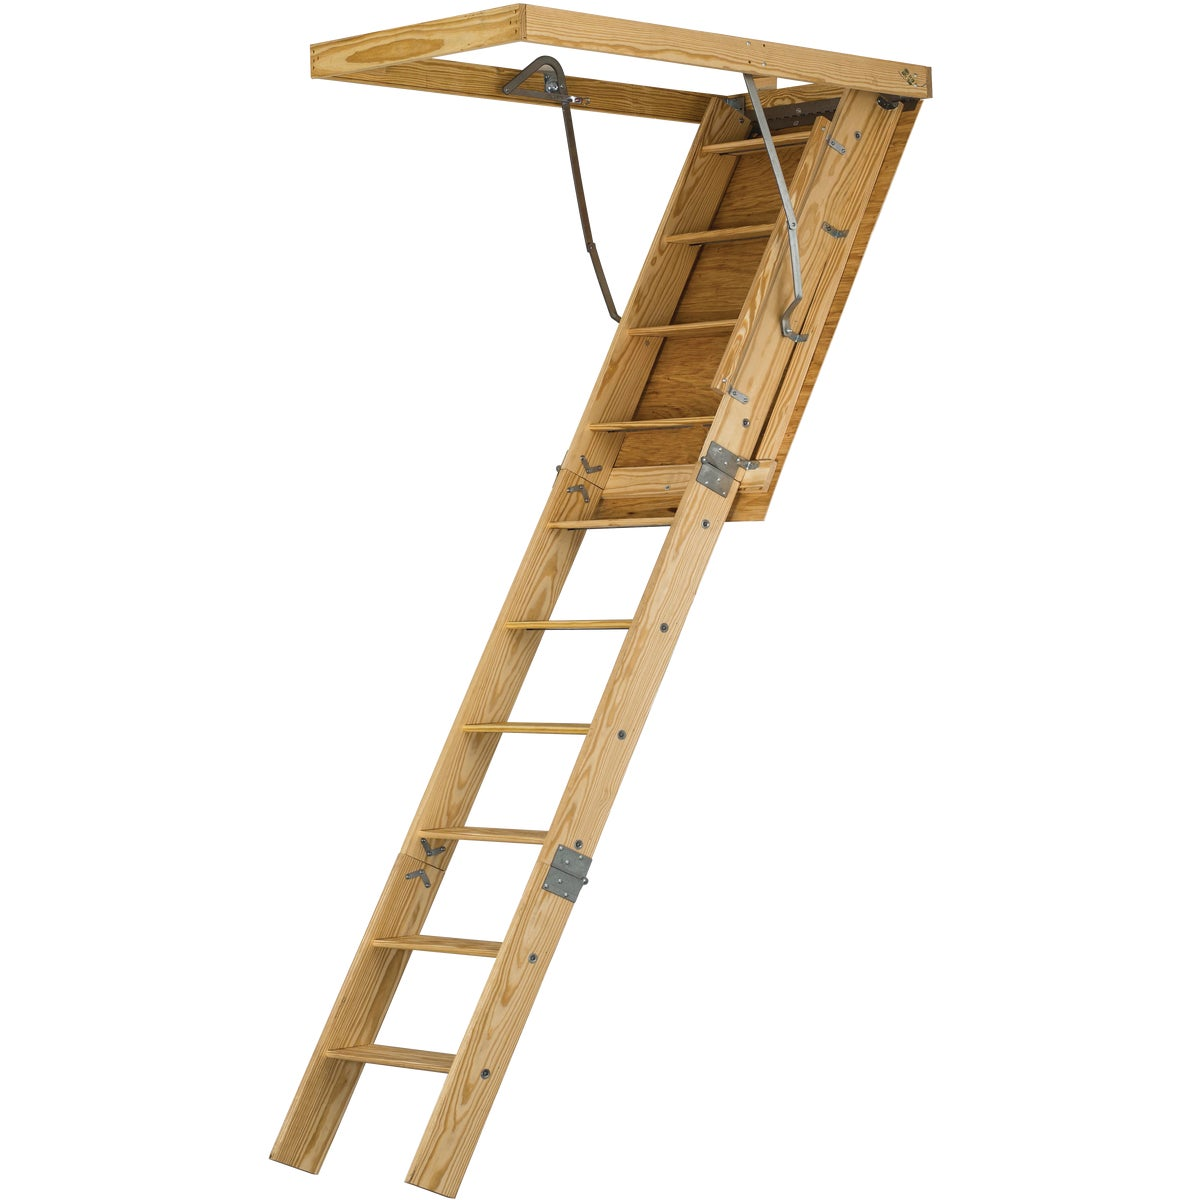 30X54X105 ATTIC STAIR - AG89 by Louisville Ladder